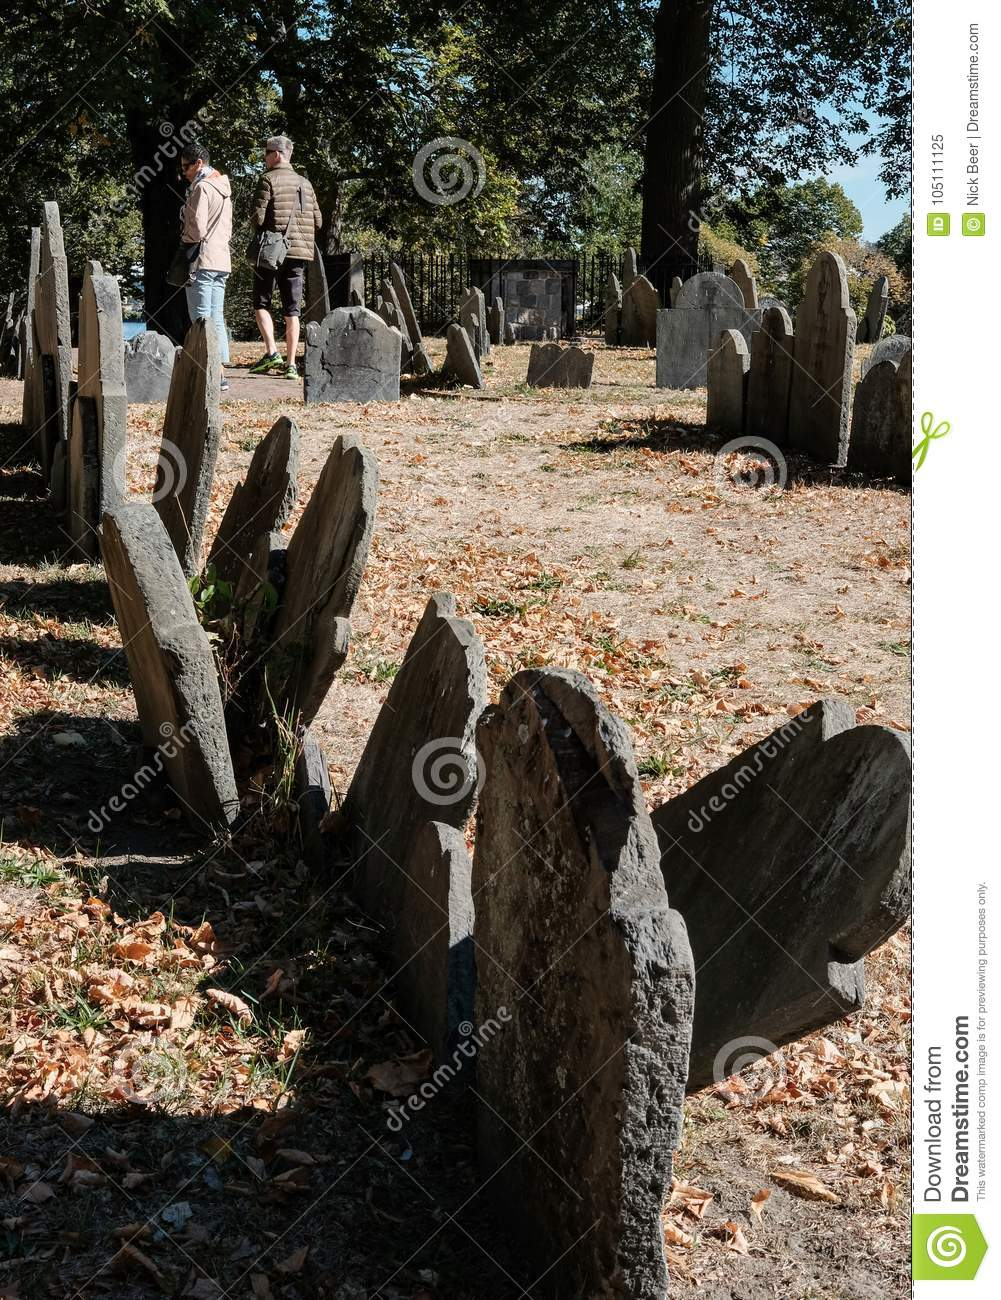 Image of American War of Independence graves seen in a famous Boston cemetery.